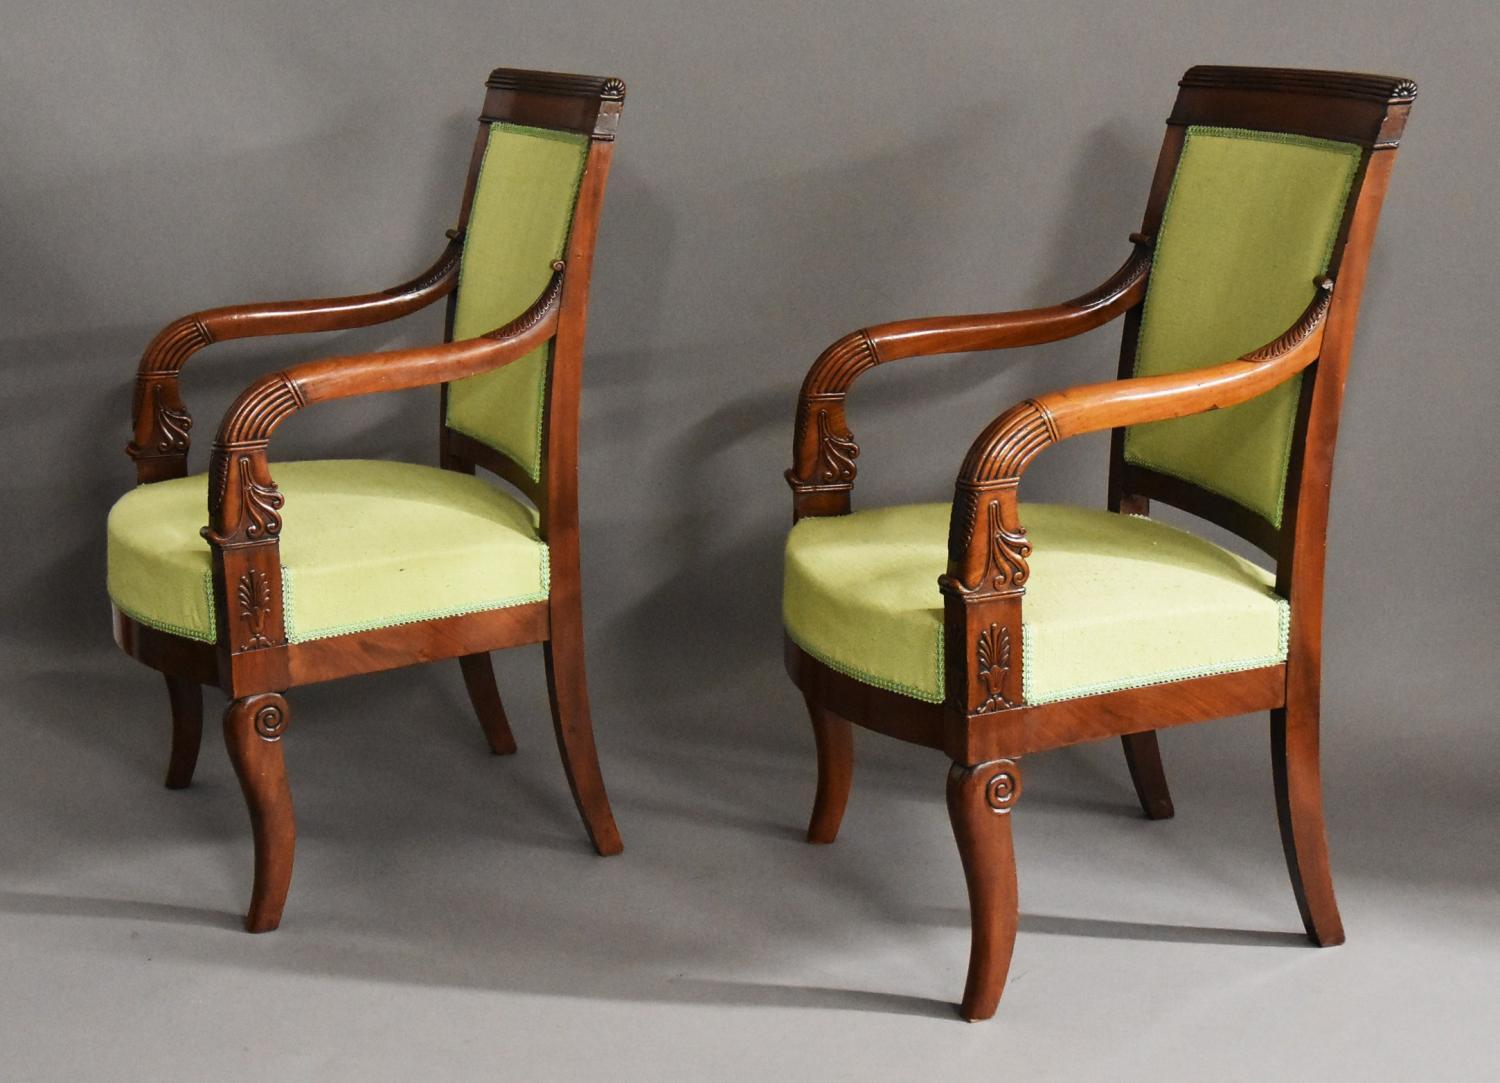 Superb pair of French Empire fauteuils